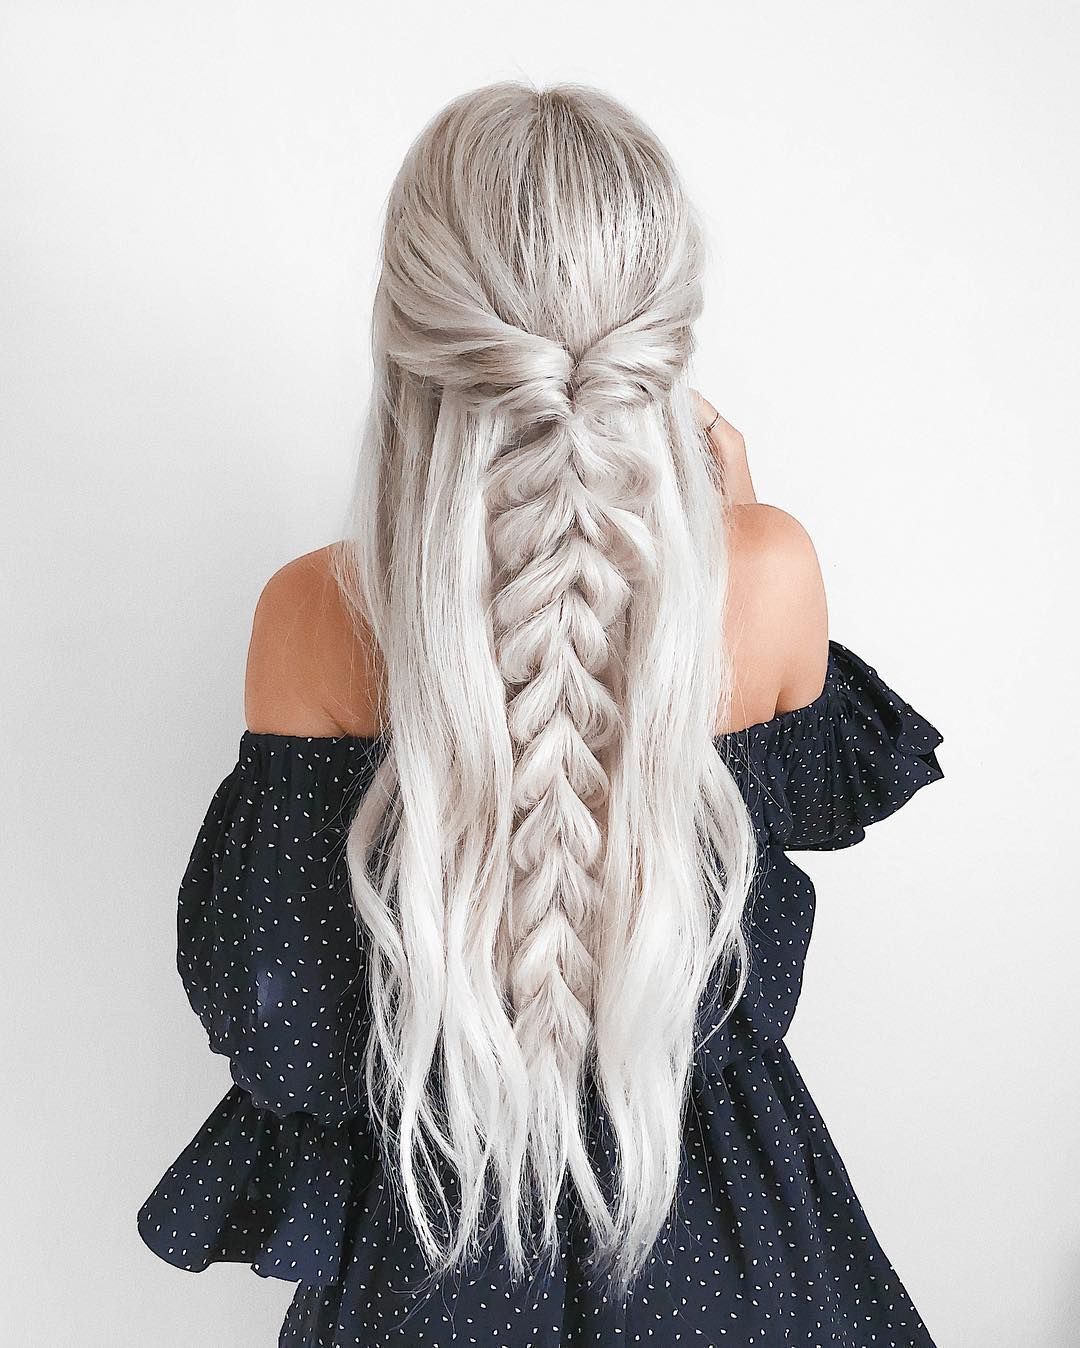 "If you think that you have applied all types of hairstyles  of plait hair, then I will say that apply these. You will get some wonderful  new variety of you favorite plait hairstyle. <a class=""pintag"" href=""/explore/PlaitHairstyles/"" title=""#PlaitHairstyles explore Pinterest"">#PlaitHairstyles</a>  <a class=""pintag"" href=""/explore/PlaitHairstylestutorial/"" title=""#PlaitHairstylestutorial explore Pinterest"">#PlaitHairstylestutorial</a>  <a class=""pintag"" href=""/explore/PlaitHairstyleseasy/"" title=""#PlaitHairstyleseasy explore Pinterest"">#PlaitHairstyleseasy</a>  <a class=""pintag"" href=""/explore/PlaitHairstylesupdo/"" title=""#PlaitHairstylesupdo explore Pinterest"">#PlaitHairstylesupdo</a>  <a class=""pintag"" href=""/explore/PlaitHairstyleswedding/"" title=""#PlaitHairstyleswedding explore Pinterest"">#PlaitHairstyleswedding</a>  <a class=""pintag"" href=""/explore/PlaitHairstylesshorthair/"" title=""#PlaitHairstylesshorthair explore Pinterest"">#PlaitHairstylesshorthair</a><p><a href=""http://www.homeinteriordesign.org/2018/02/short-guide-to-interior-decoration.html"">Short guide to interior decoration</a></p>"